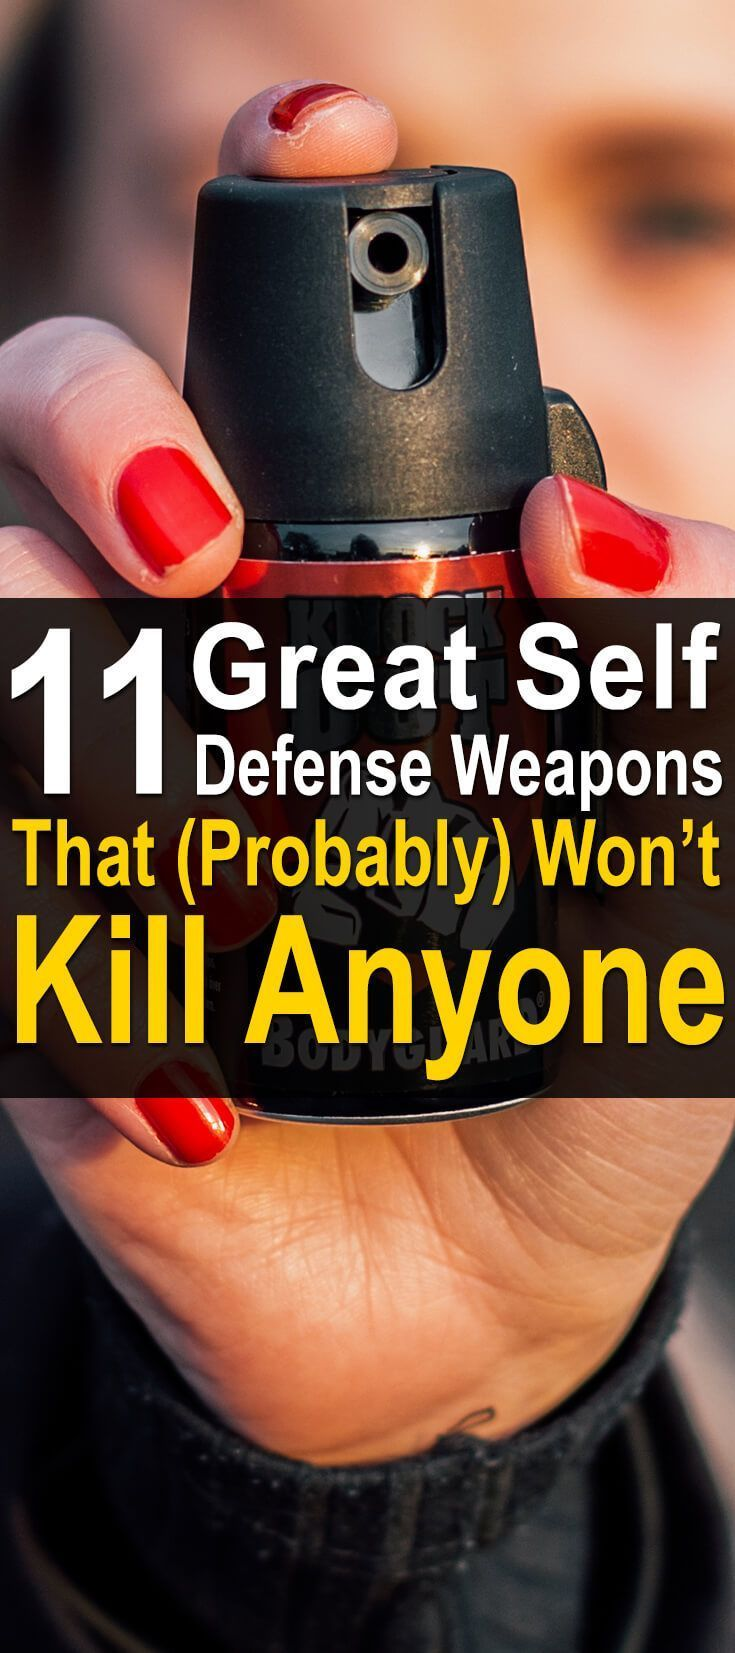 11 Great Self Defense Weapons That (Probably) Won't Kill Anyone. The most popular self-defense weapon is a firearm, but that doesn't mean it's always the best self-defense weapon. #Urbansurvivalsite #Selfdefenseweapons #Protectyourself #Weaponsforprotection #selfdefenseproducts